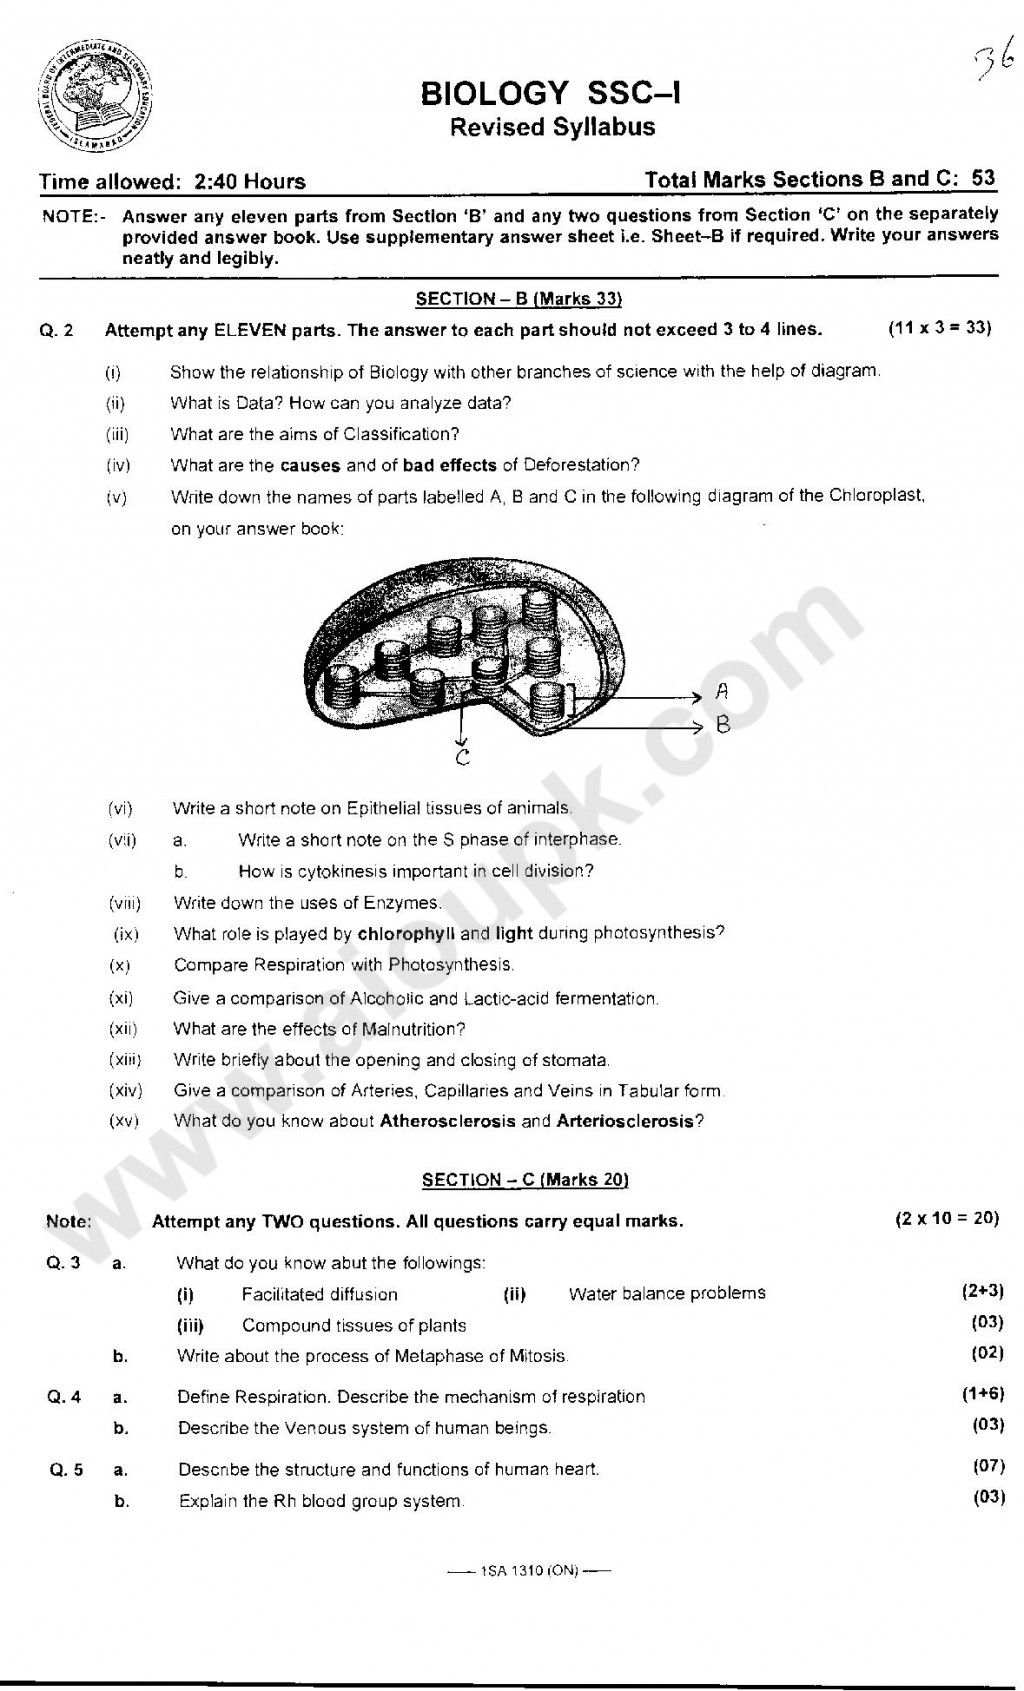 017 Biology Research Paper Topics For High School Students Ssc Annual Examinations Part Page Outstanding Large